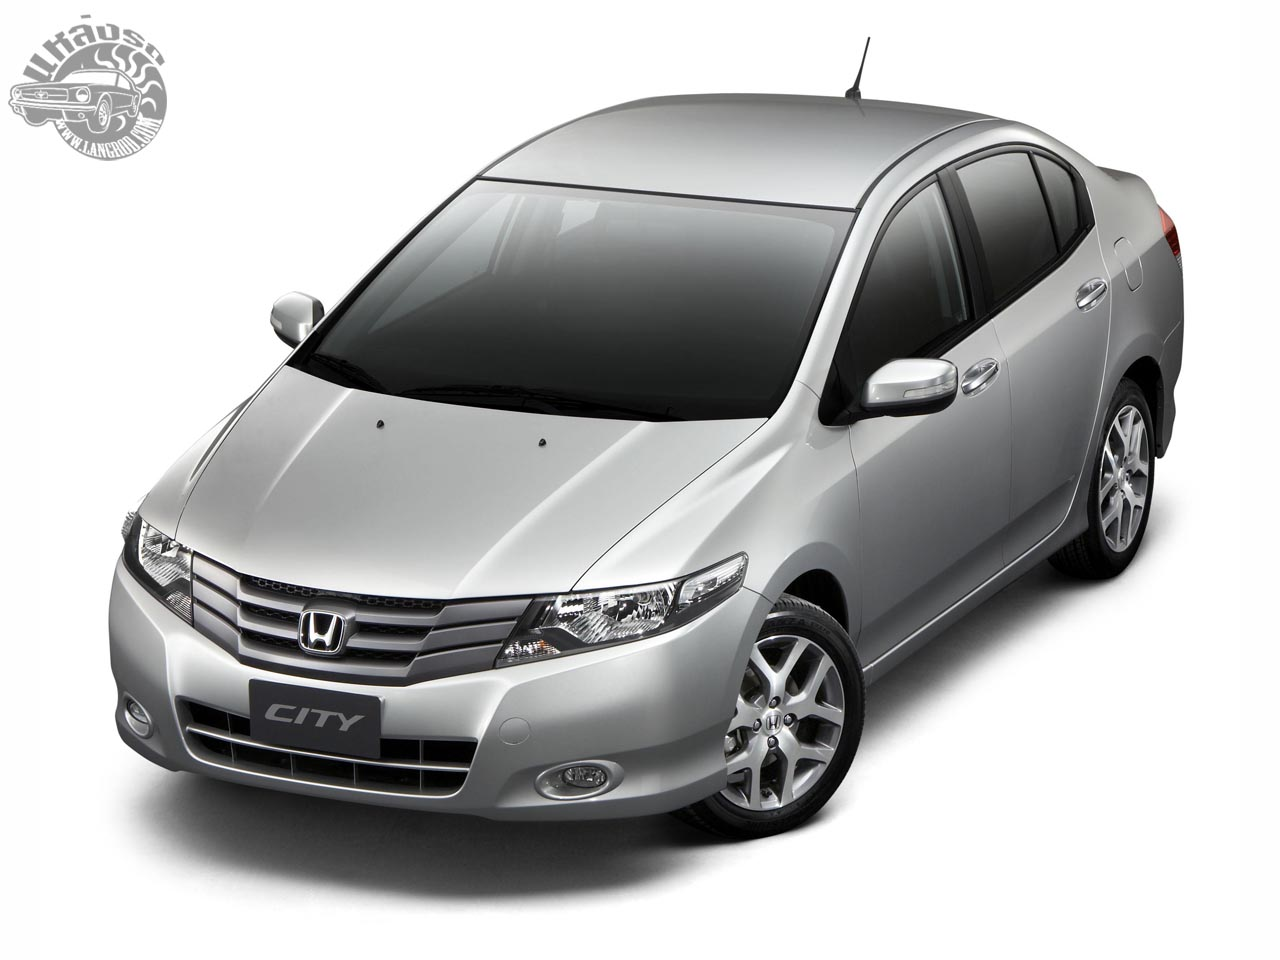 Honda City 2011 Review Saimies Tech